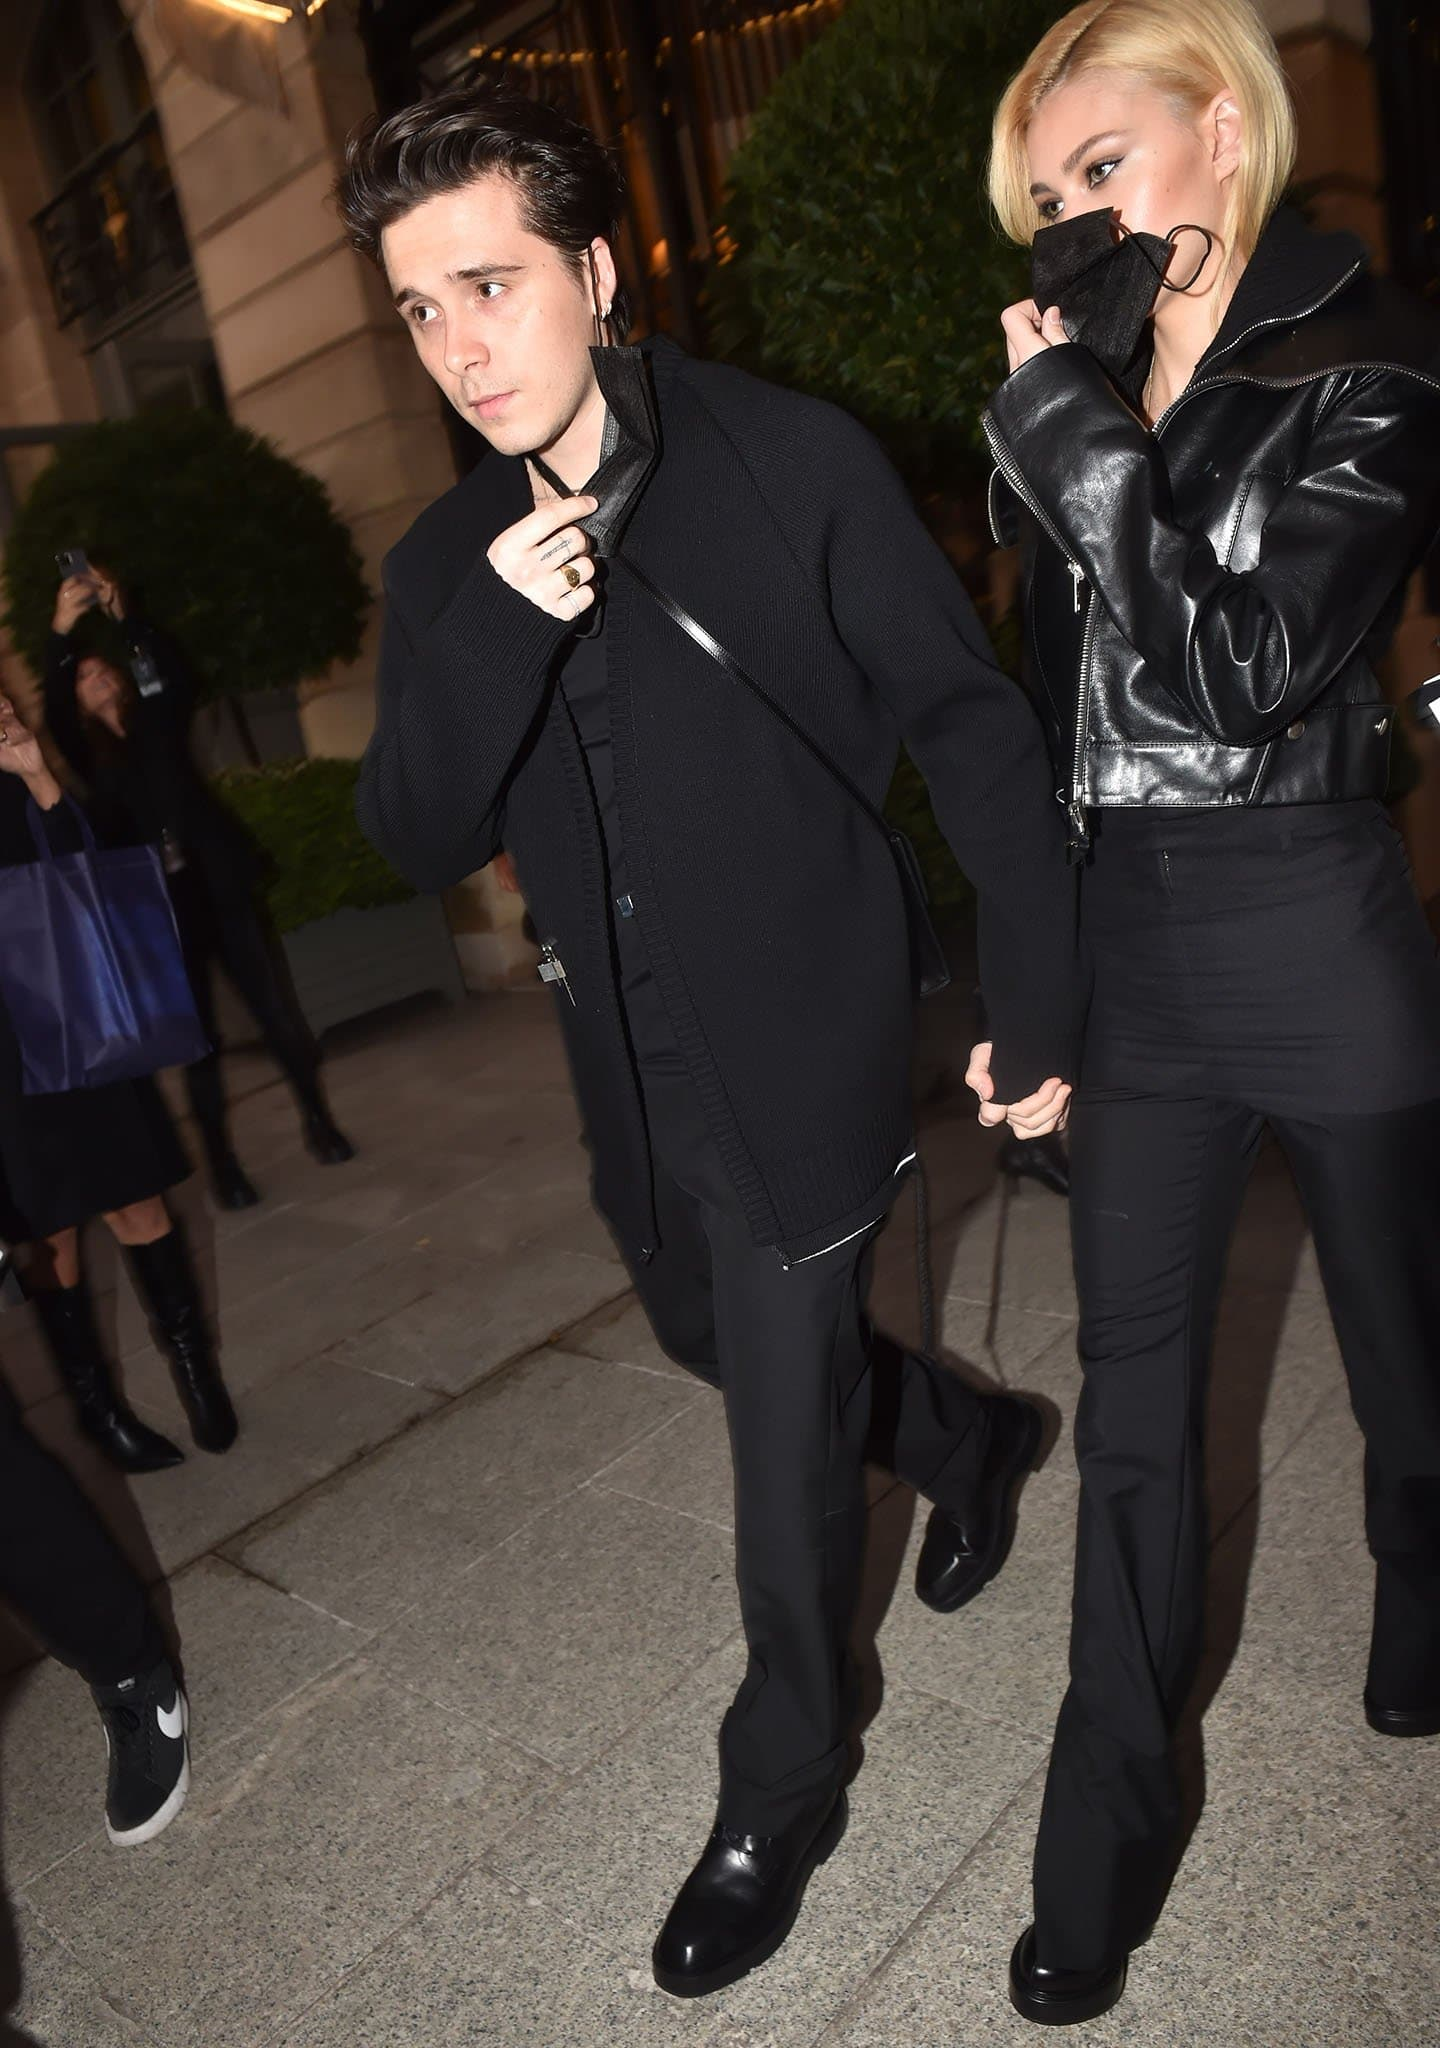 Brooklyn Beckham and Nicola Peltz leaving Ritz hotel for Givenchy's runway show during Paris Fashion Week on October 3, 2021